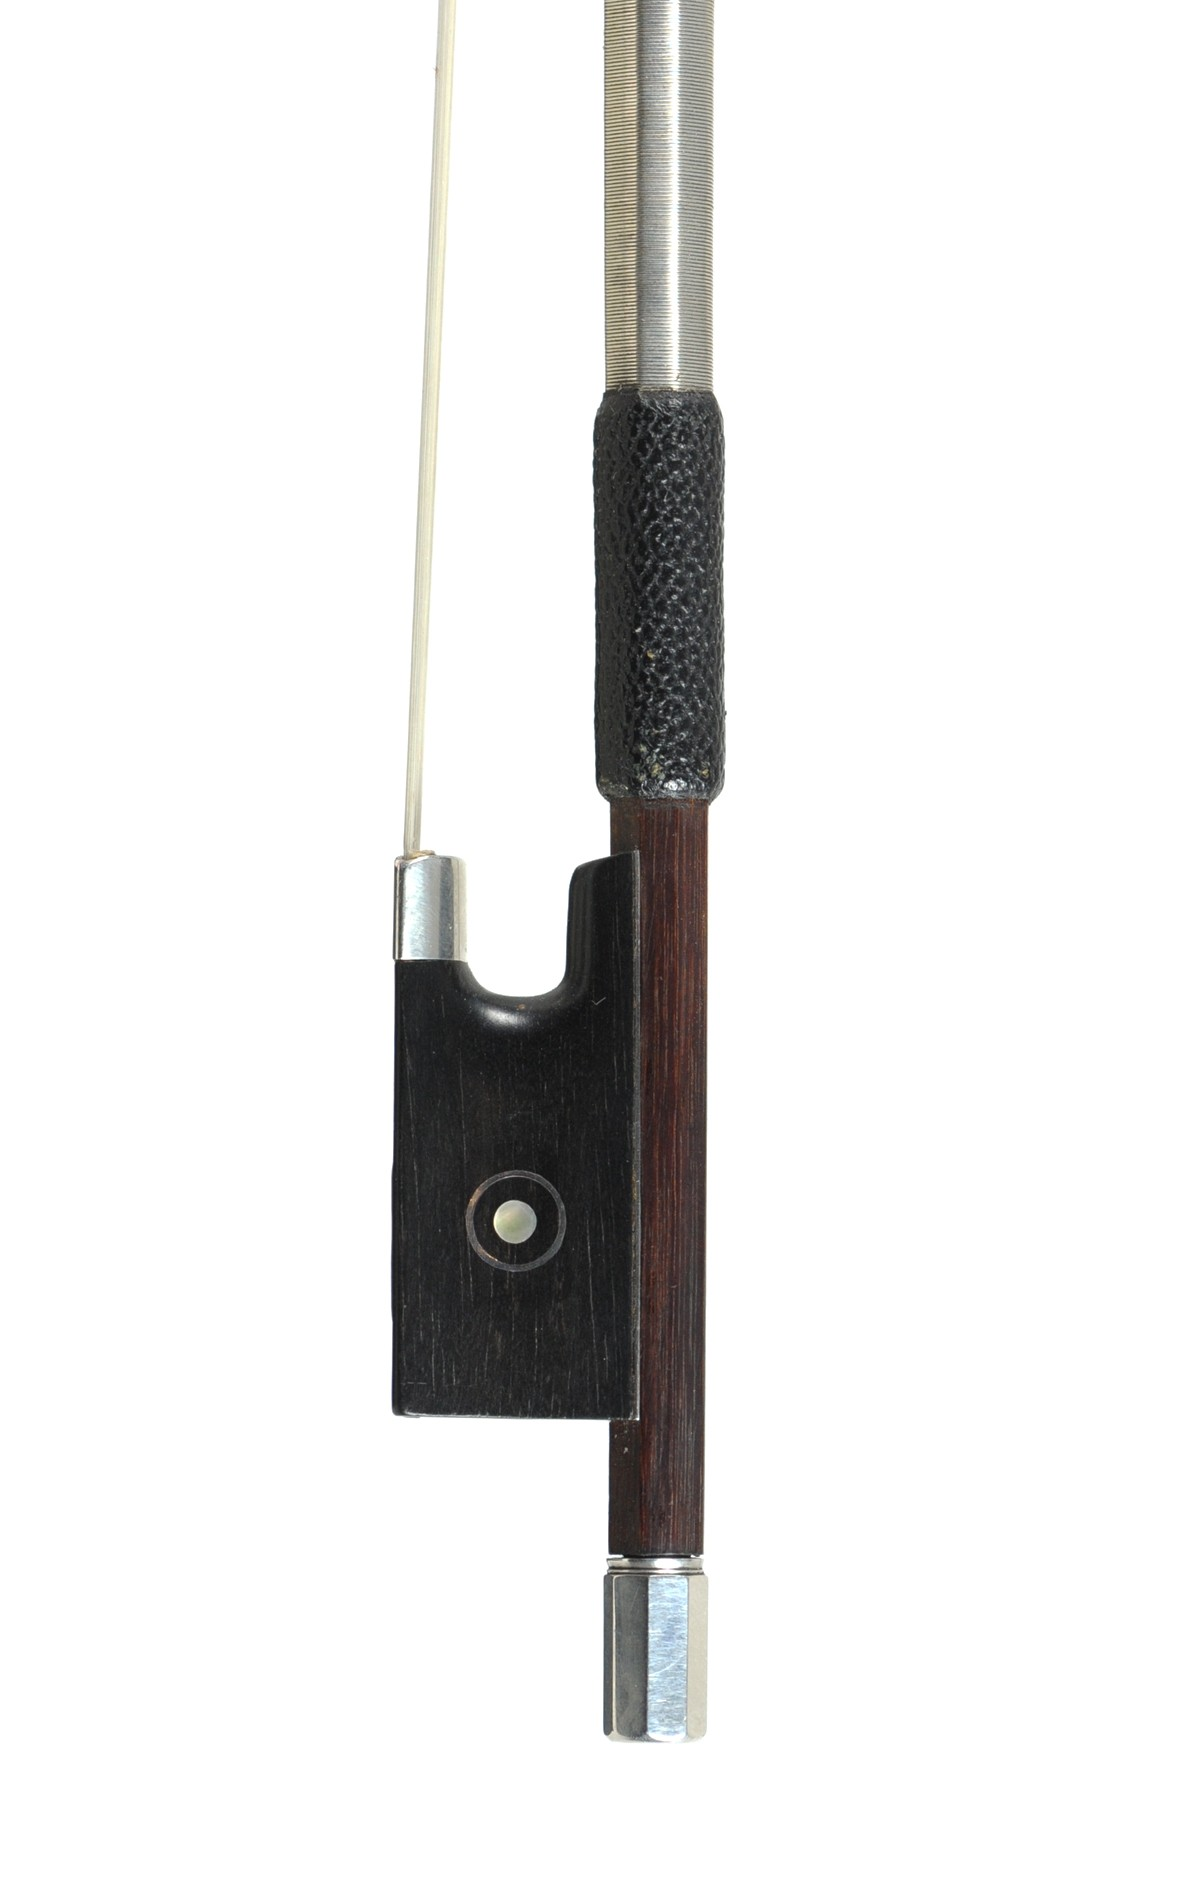 Fine German master bow after E. Sartory